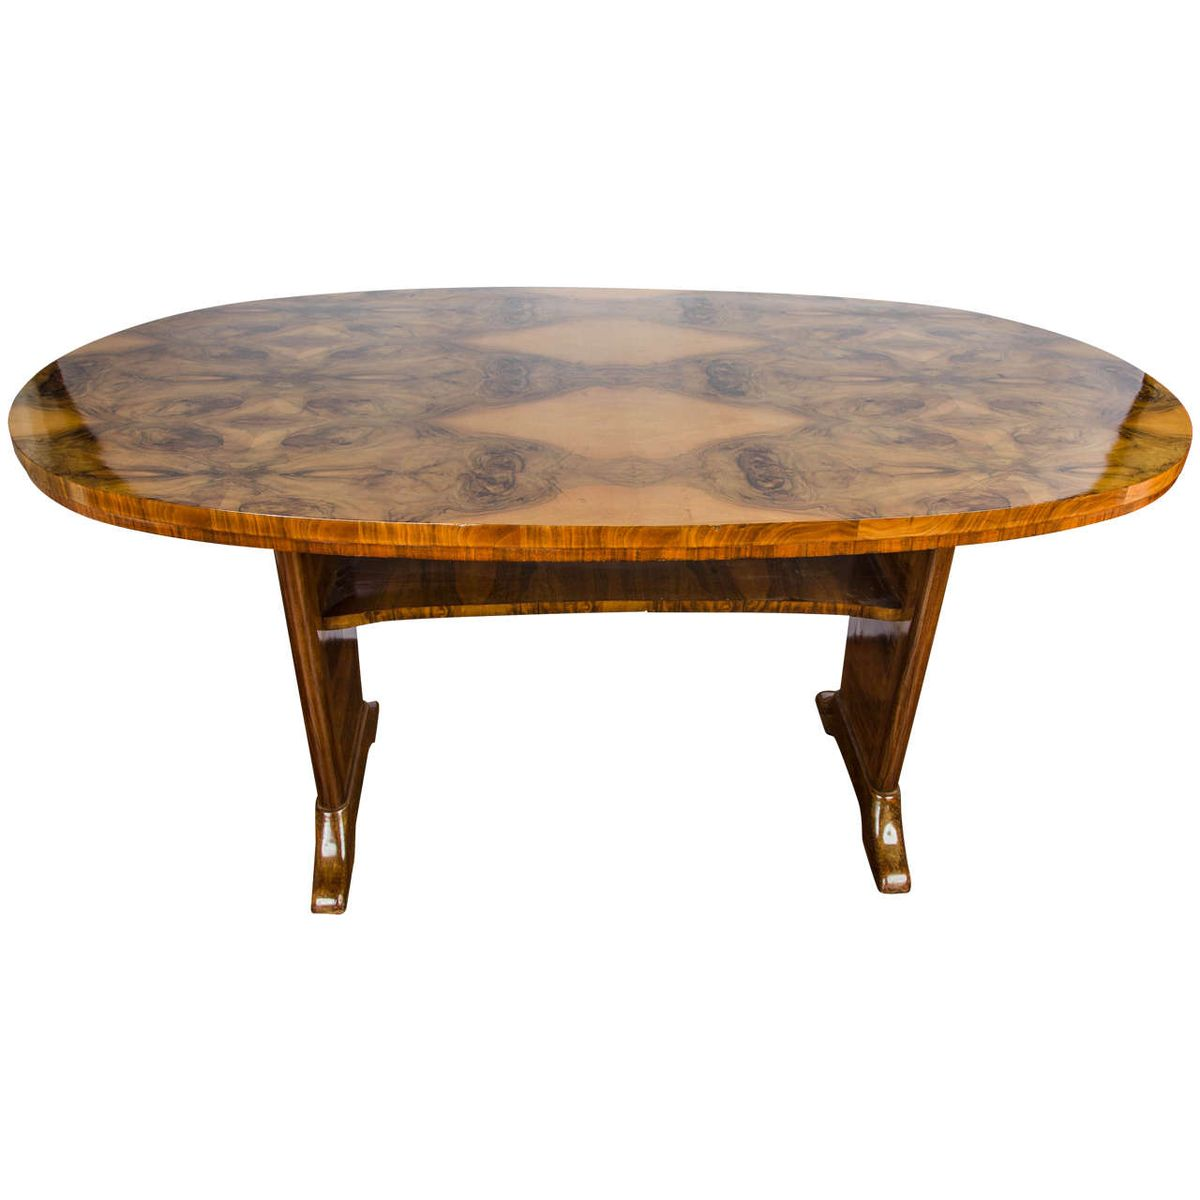 Italian dining table by osvaldo borsani for sale at pamono for Italian dining table